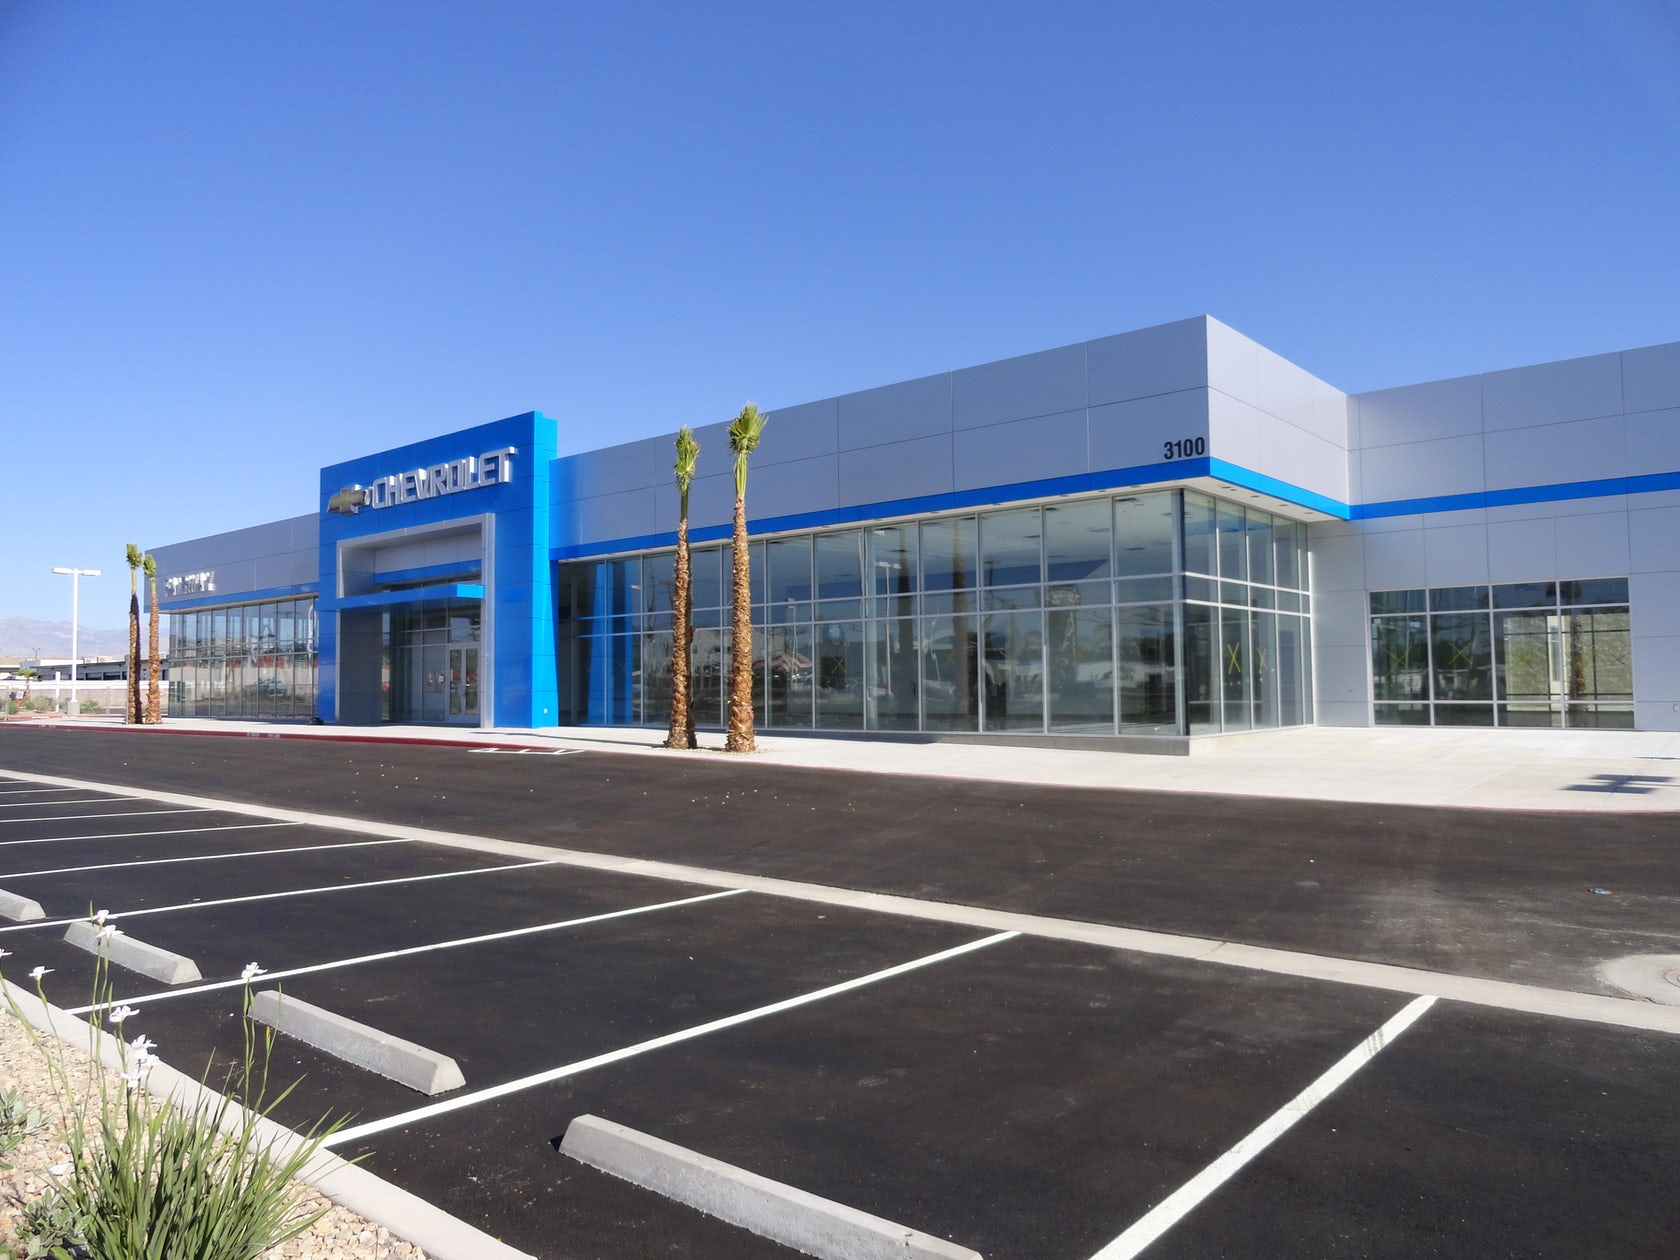 fairway chevrolet gmc dealership and service center architizer. Black Bedroom Furniture Sets. Home Design Ideas